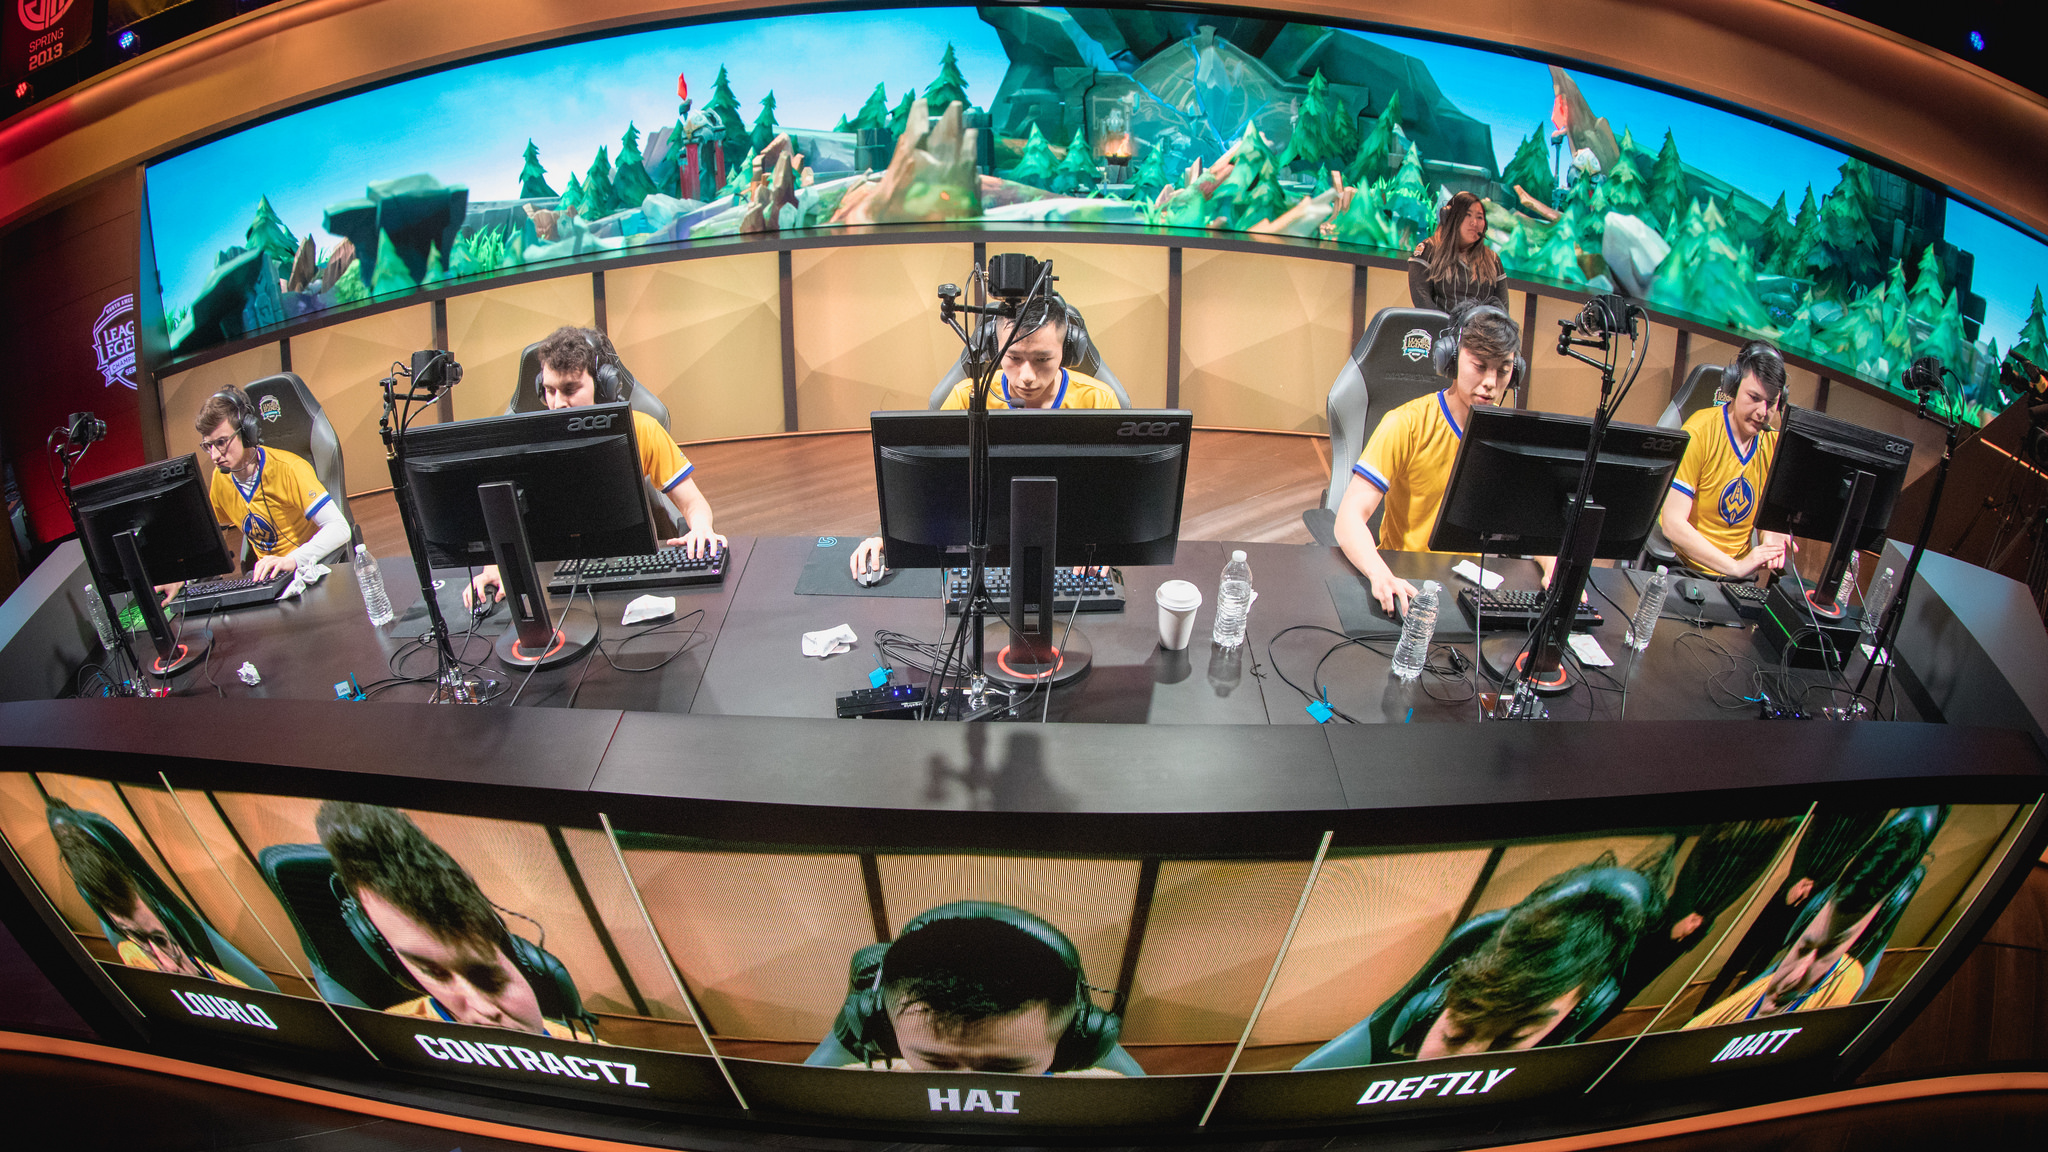 e7876c8abb77c Why competitive gaming is starting to look a lot like professional sports